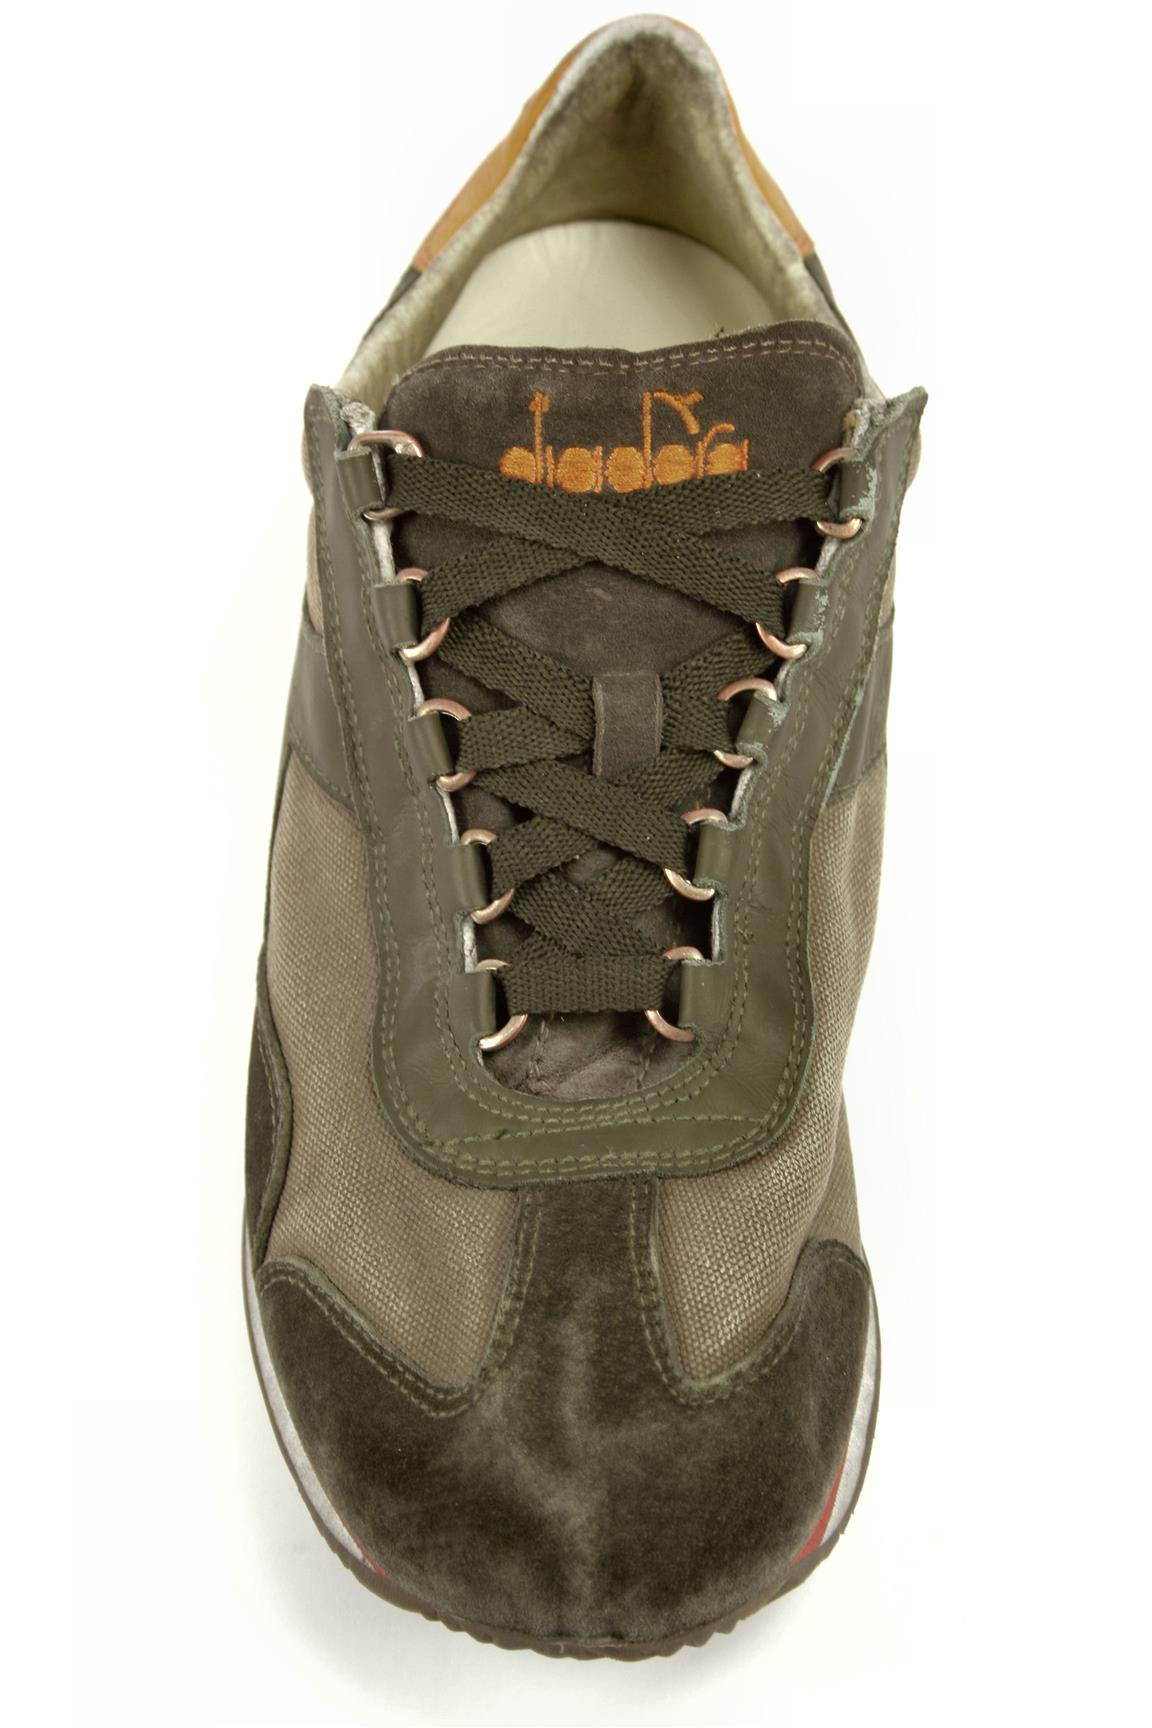 Equipe SW Dirty Fossil Tarmac Olive Green Grey DIADORA heritage Sneakers c71f4010a5